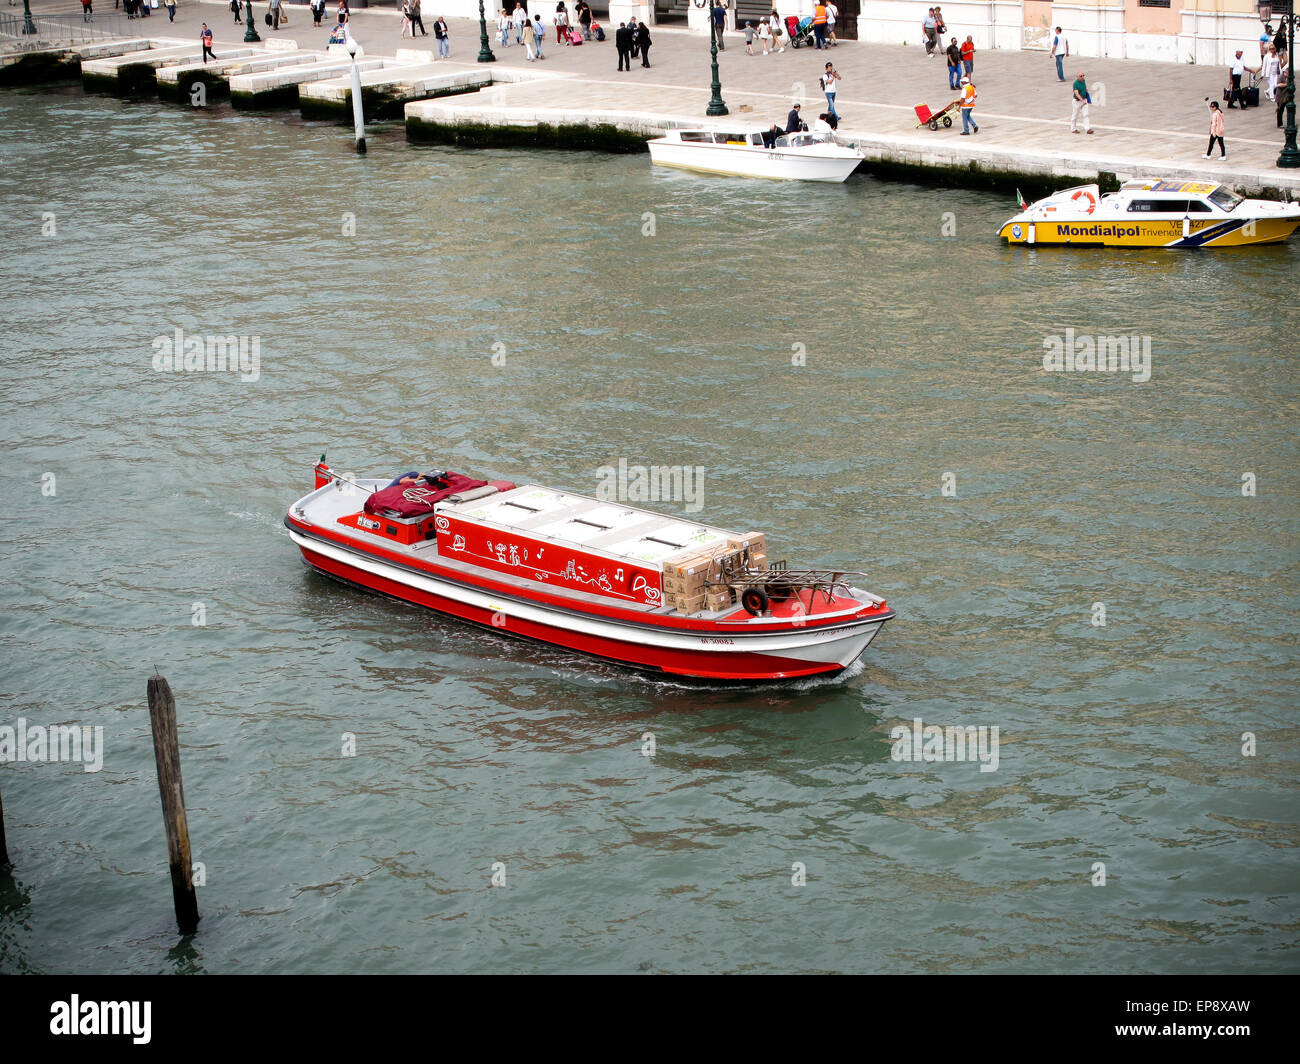 A red commercial boat on the Grand Canal in Venice - Stock Image